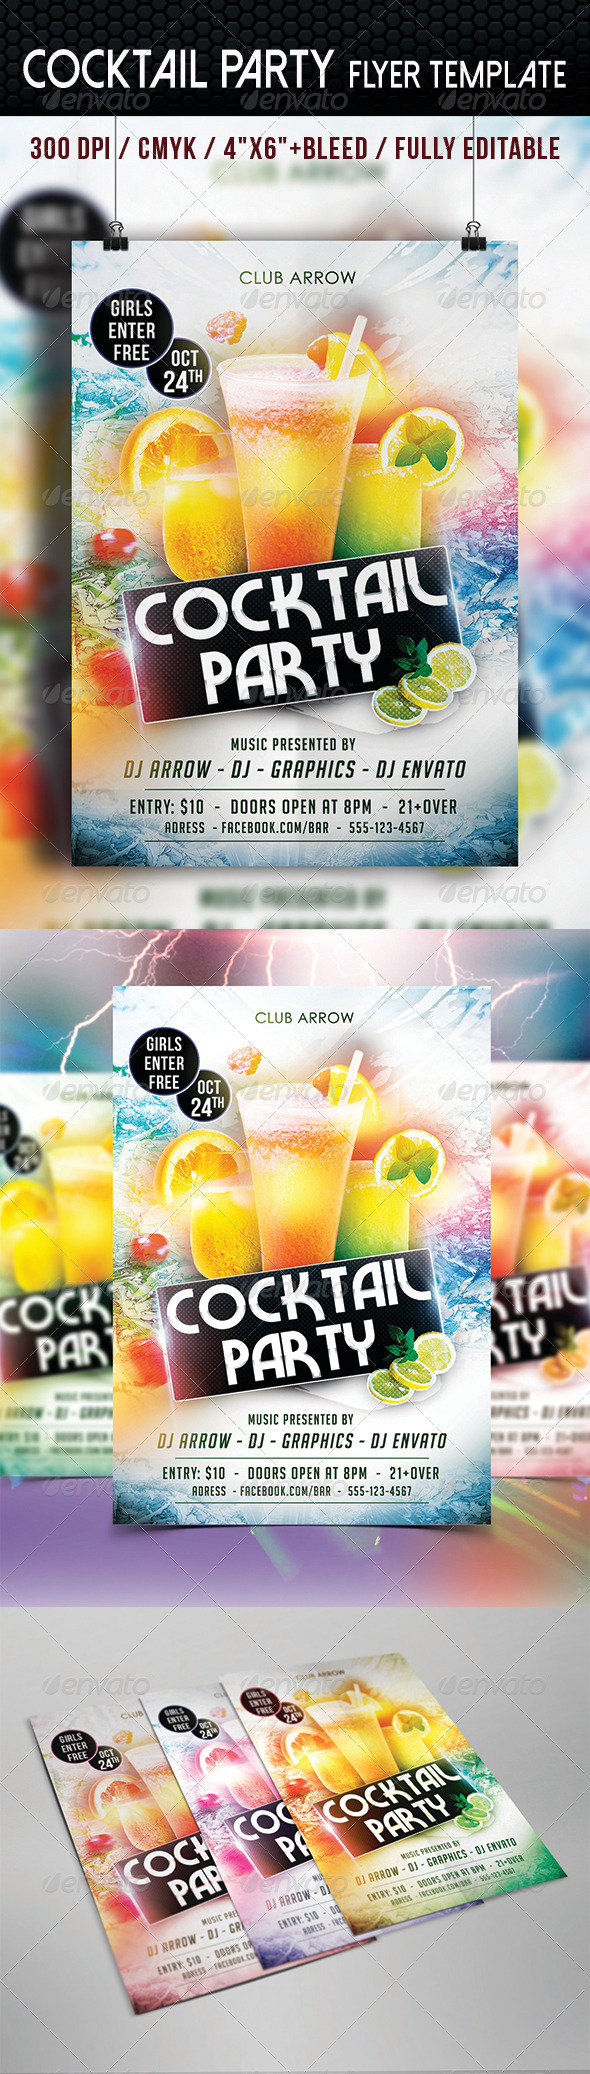 GraphicRiver Cocktail Party Flyer Template 8759089